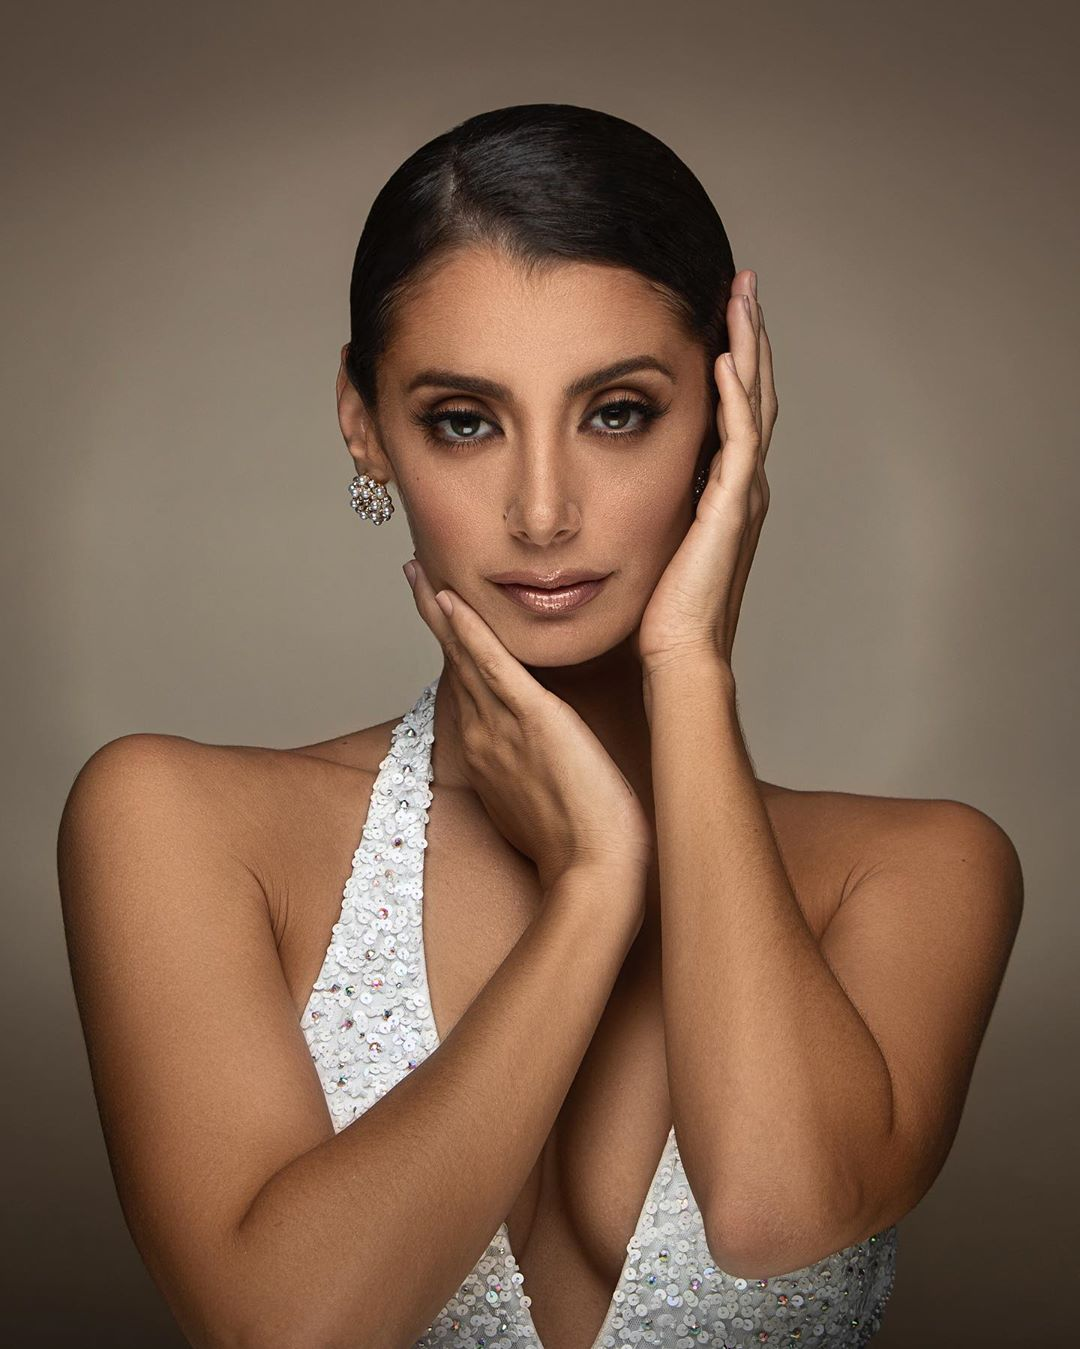 ivana carolina irizarry, miss international puerto rico 2019. 68668510